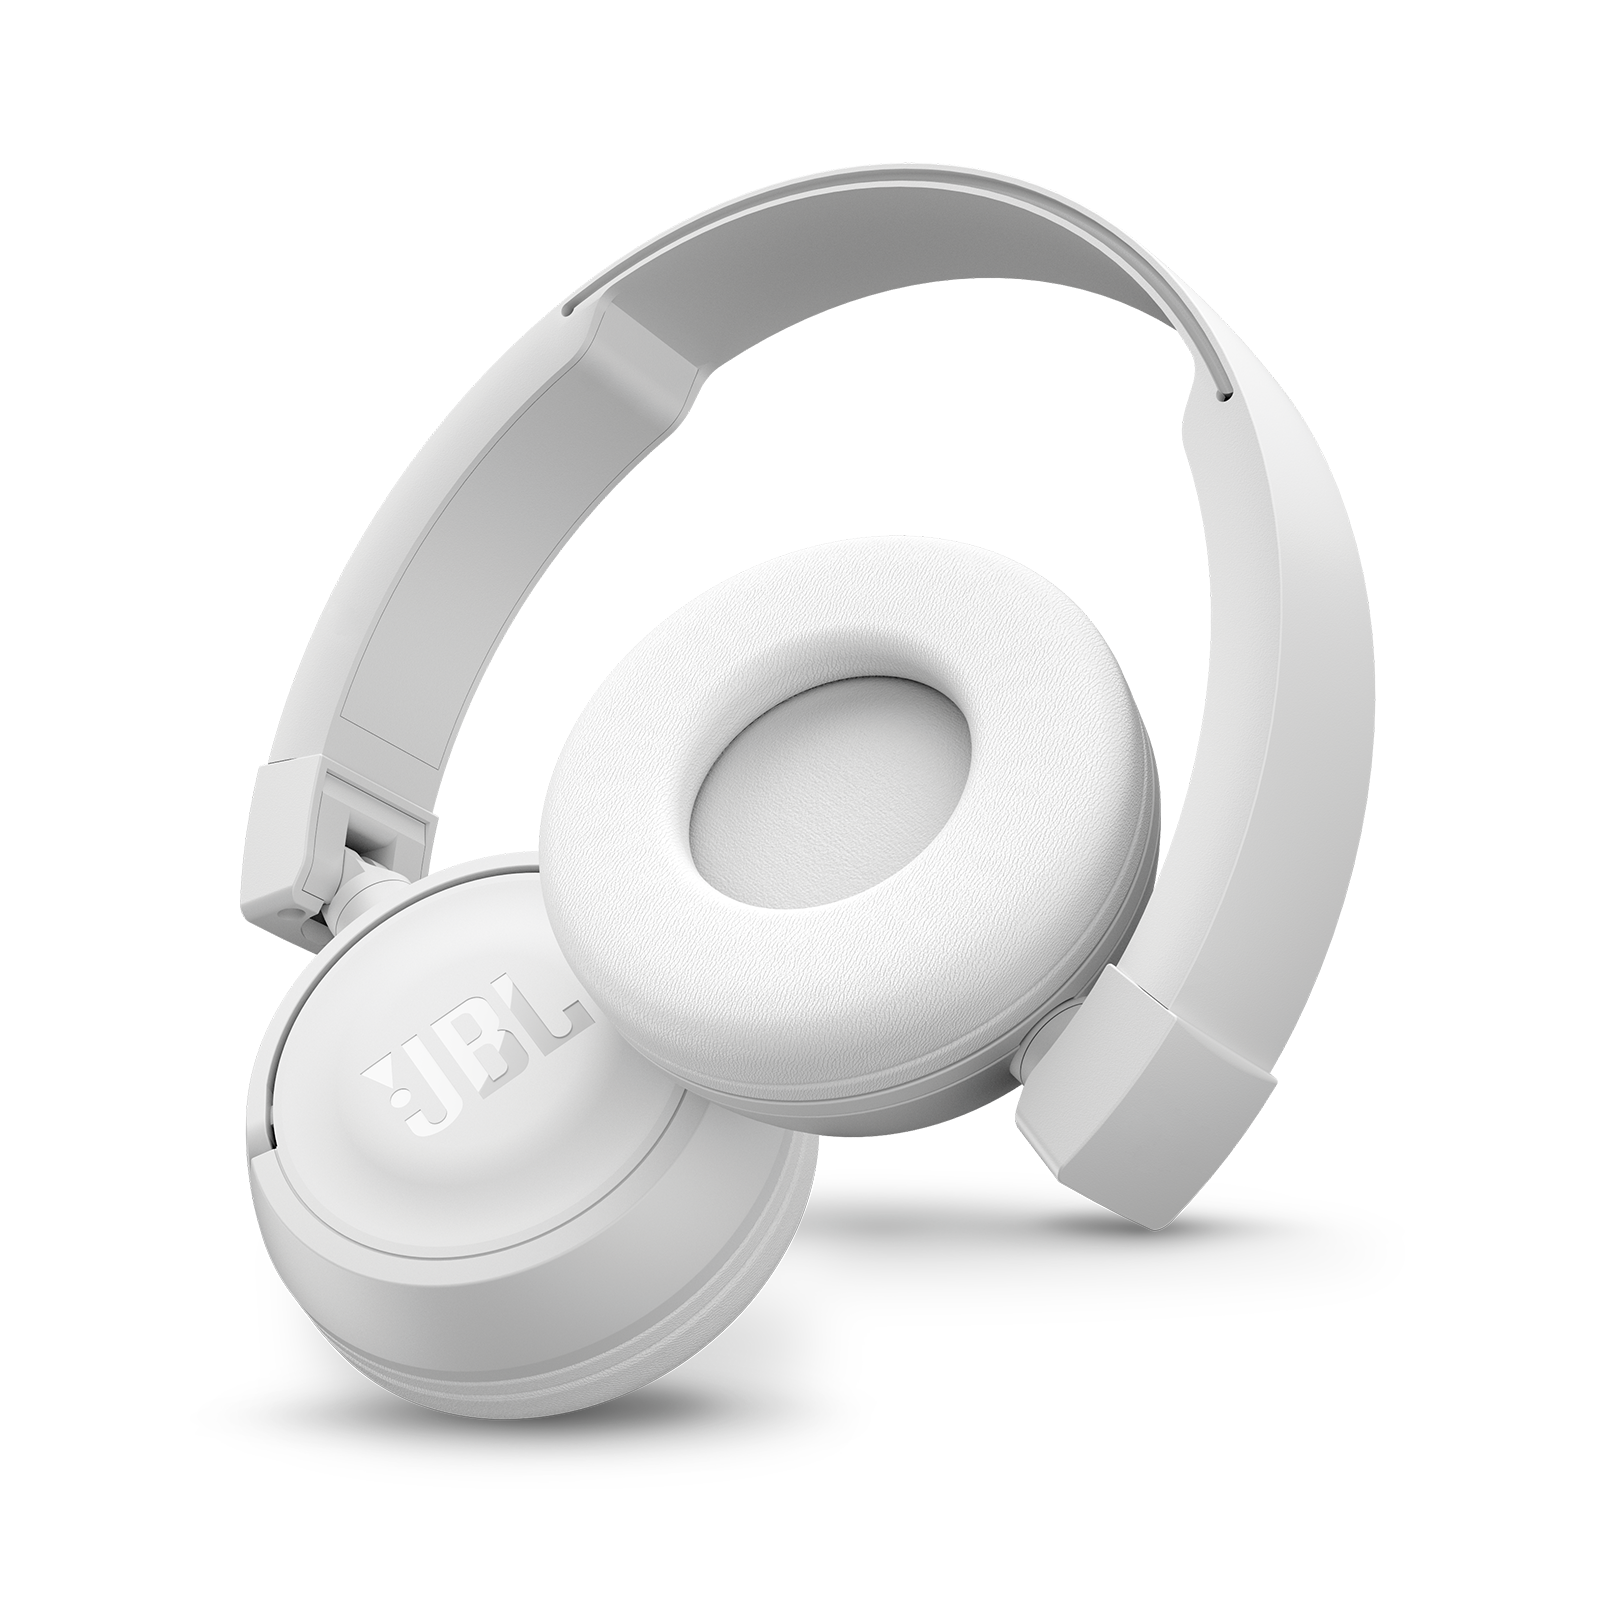 JBL T450BT - White - Wireless on-ear headphones - Detailshot 1